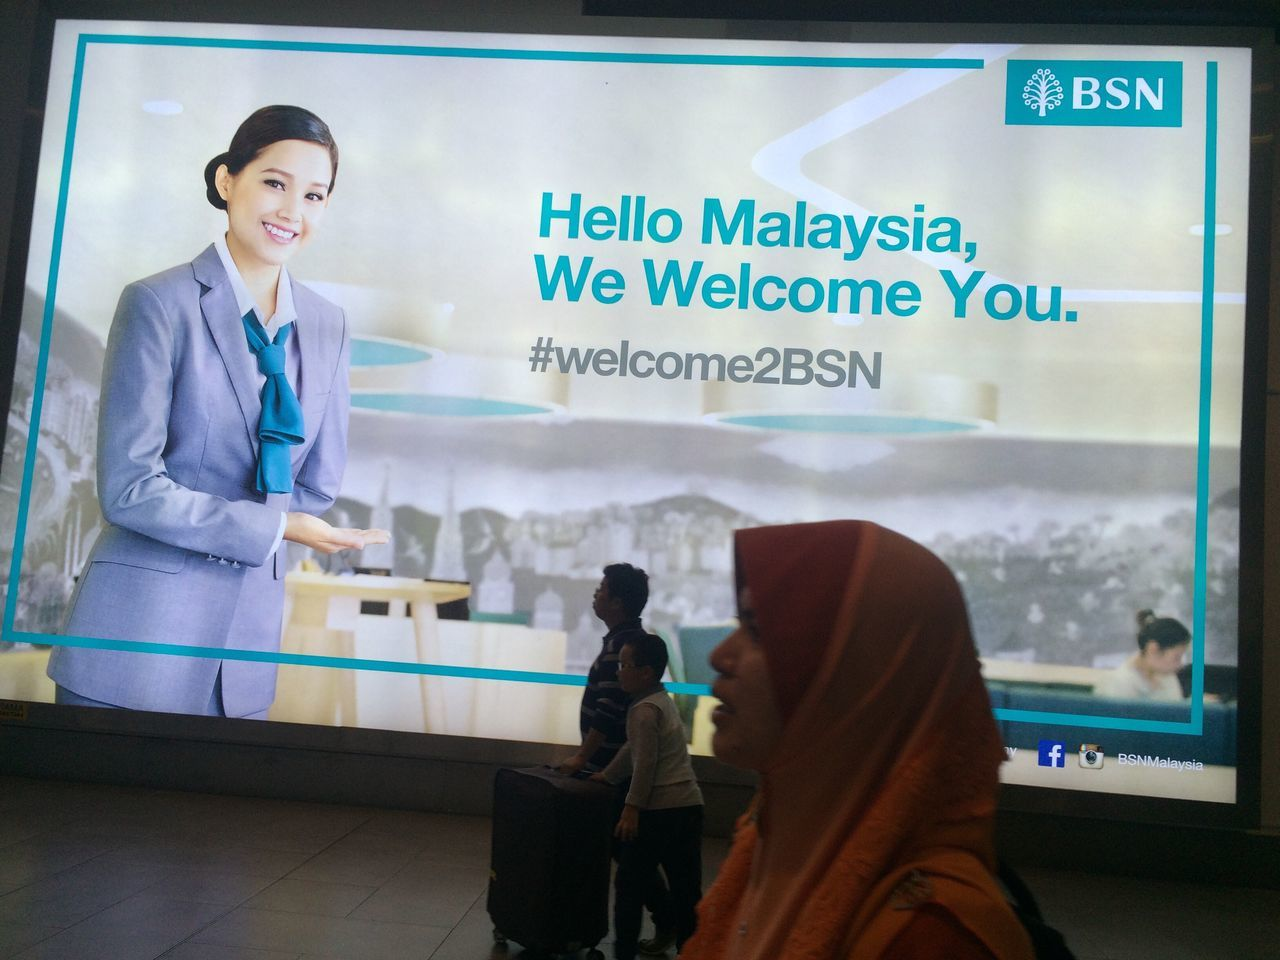 Welcome to Malaysia. I take this picture at Kuala Lumpur International Airport 2. Welcome welcome malaysia Malaysia KLIA2 Kuala Lumpur International Airport 2 bsn Bank Simpanan Nasional signboard Malaysia Truly Asia malaysia life style Taking Photos Documentary Life Journey Arrival Hall Hello Malaysia Hello Welcome2bsn